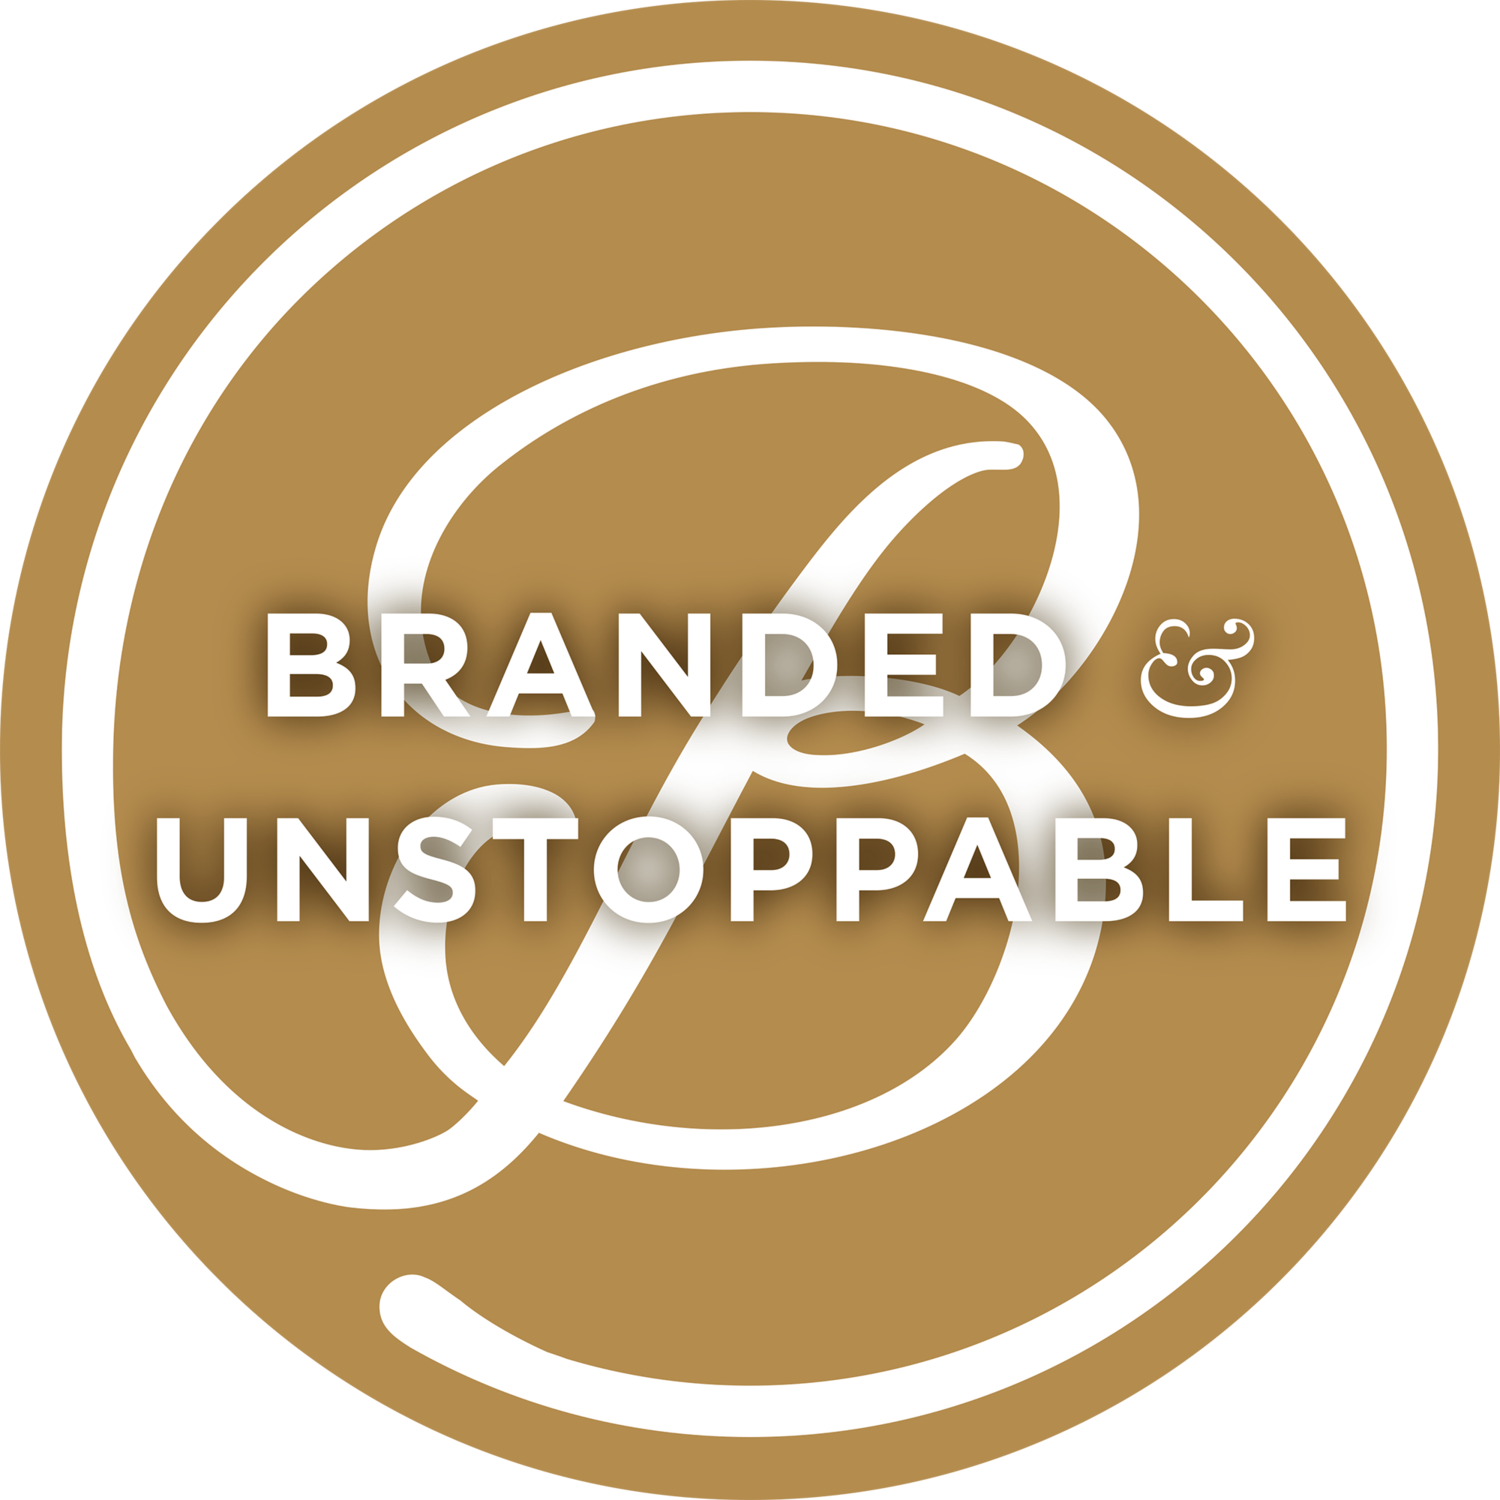 Branded & Unstoppable™ - Bespoke Brand Training For Women Entrepreneurs